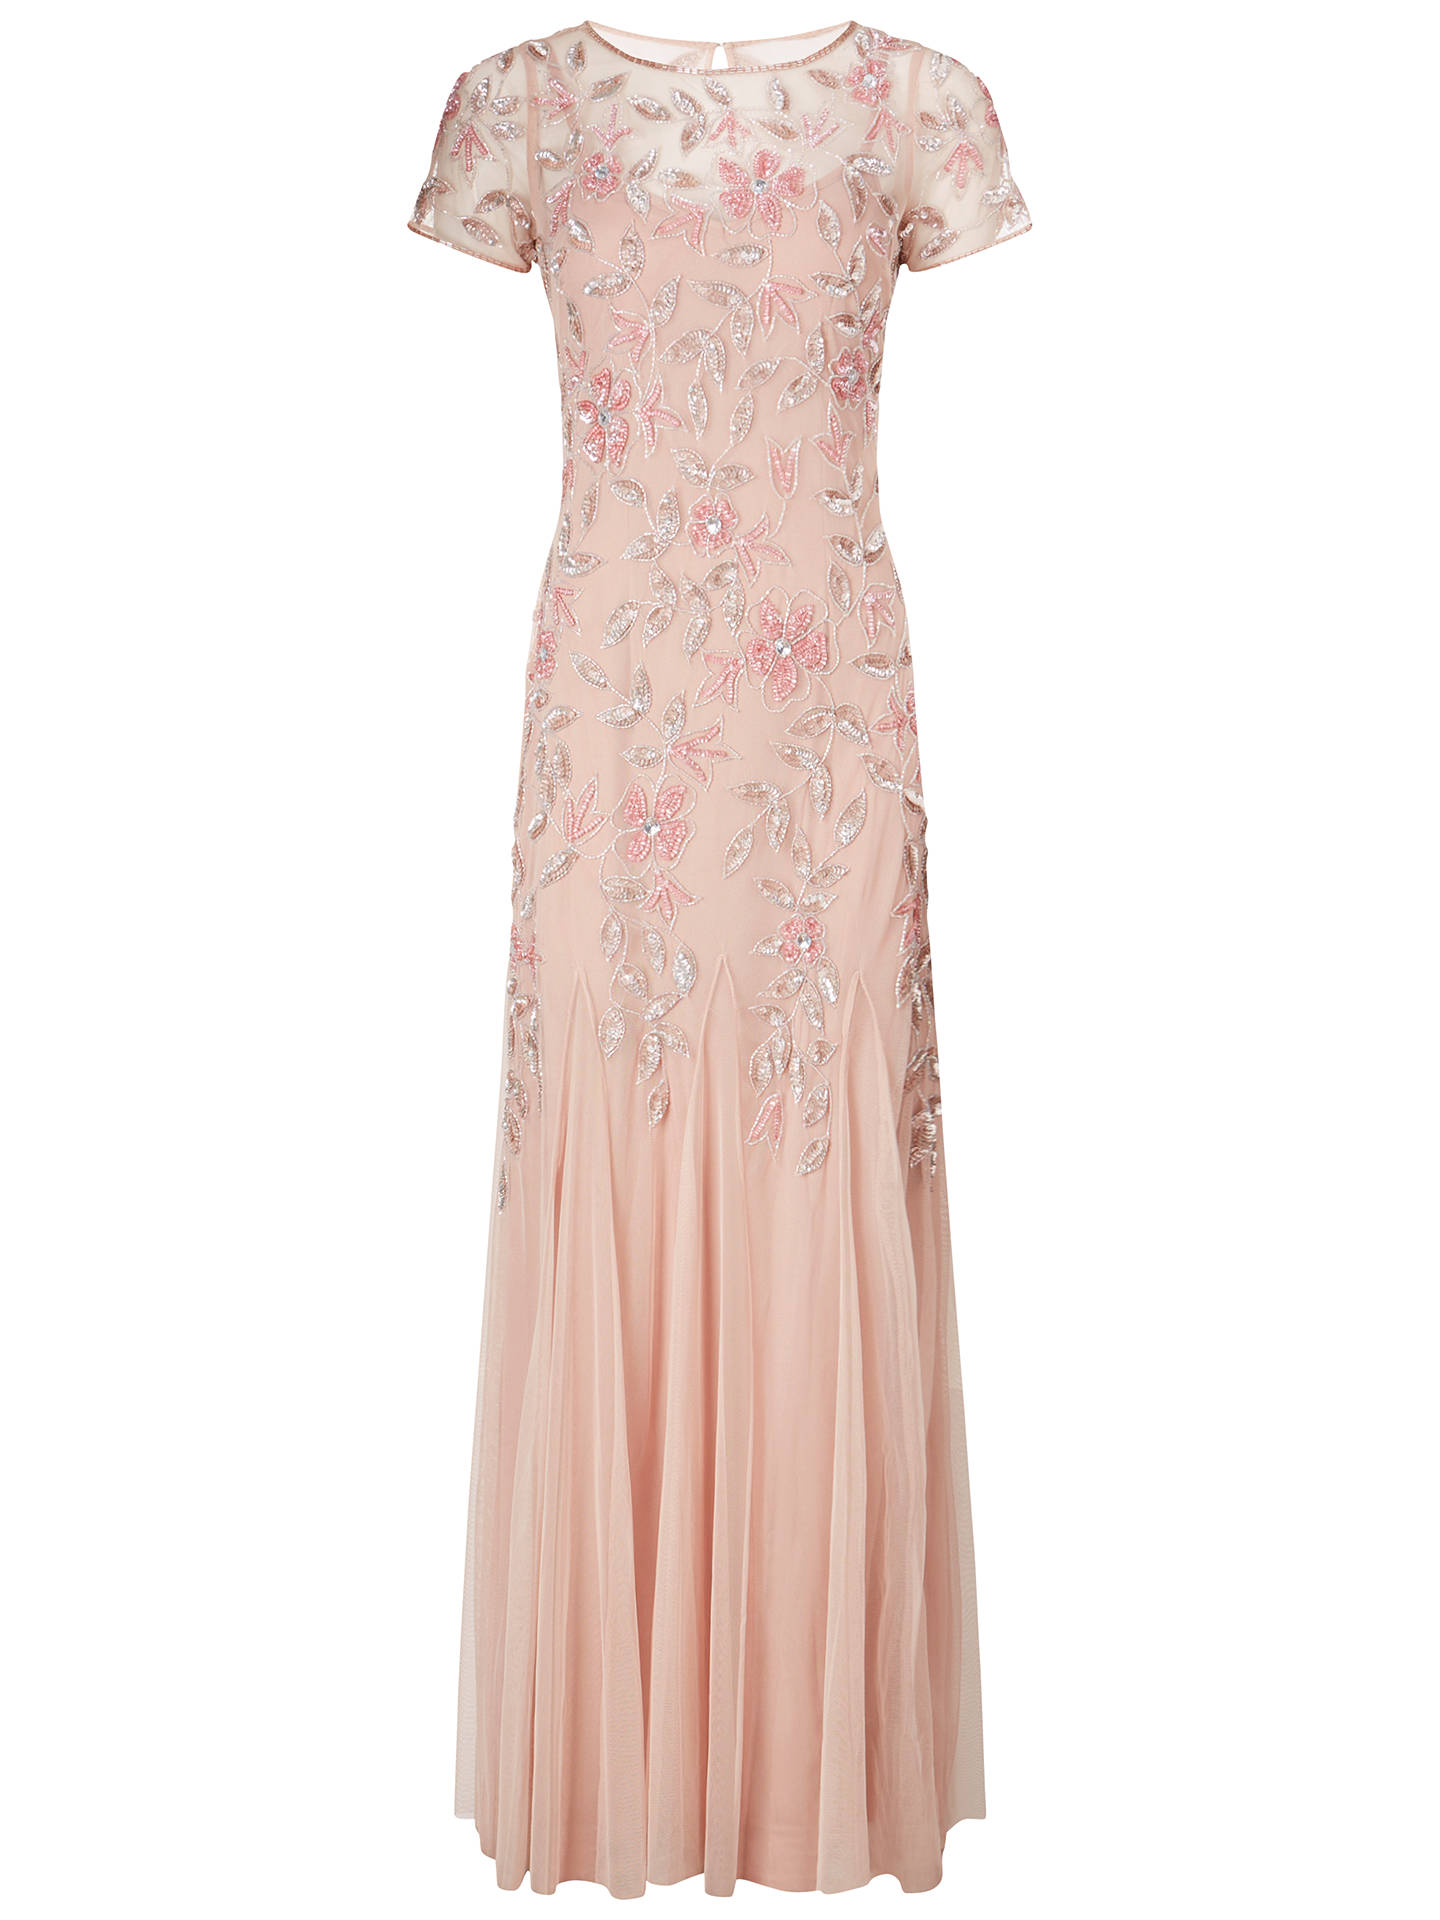 b3ee494167cfd Buy Adrianna Papell Floral Beaded Godet Gown, Blush, 8 Online at  johnlewis.com ...